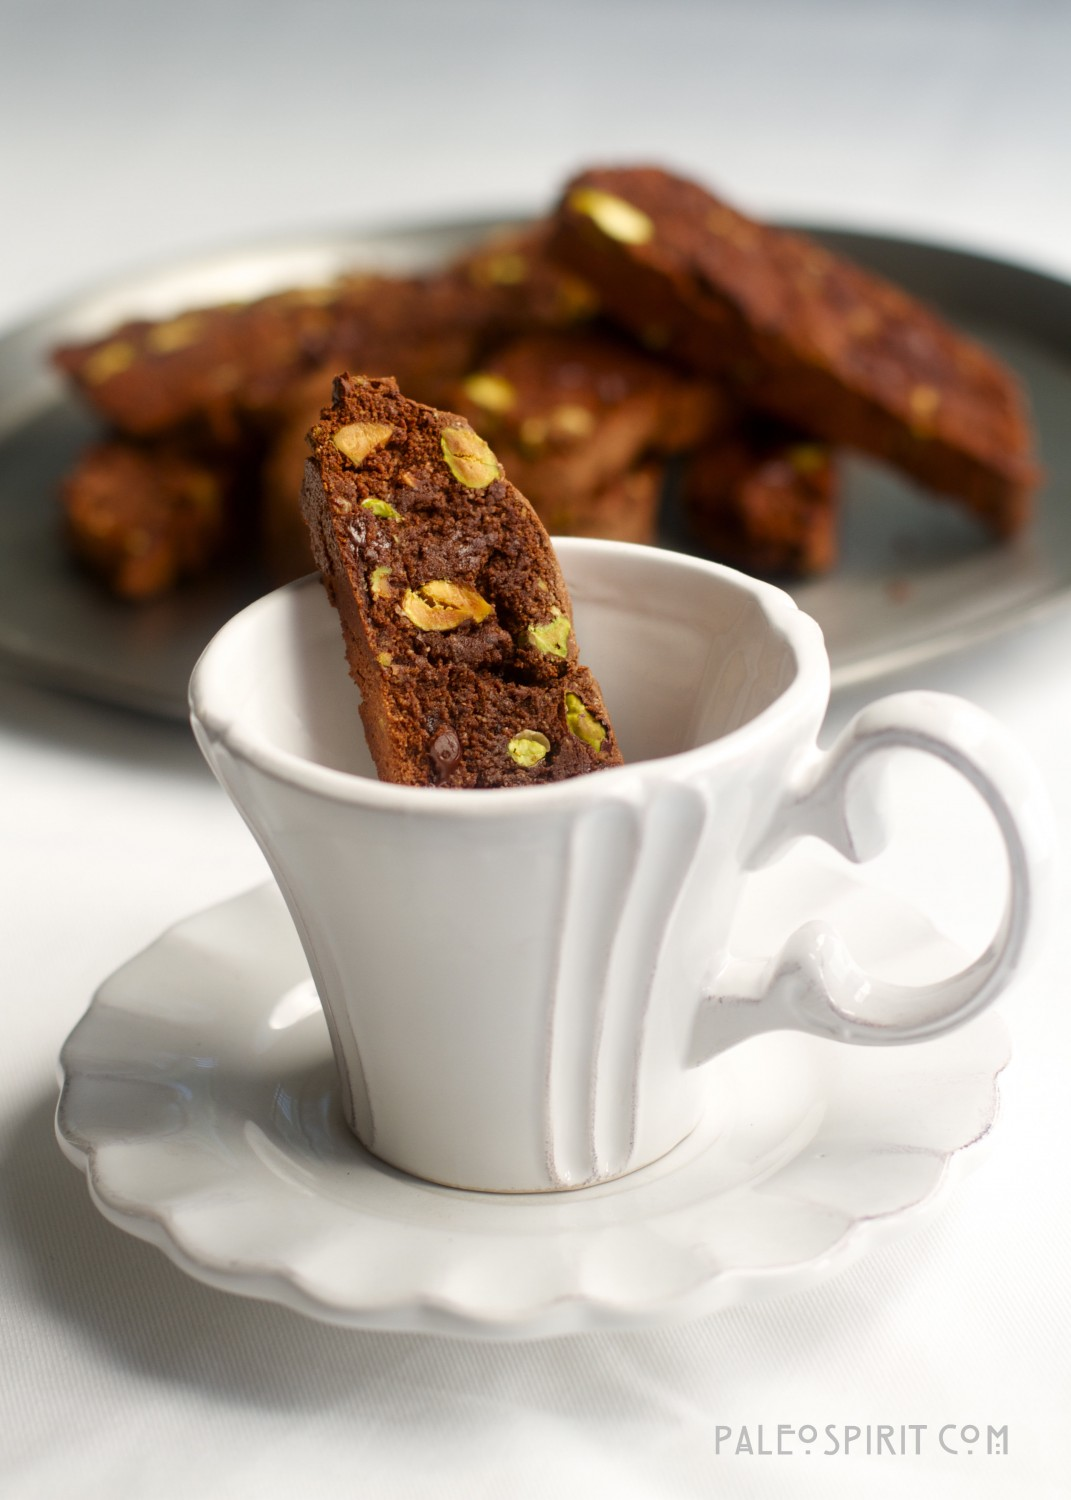 ... share some of these paleo chocolate pistachio biscotti with a friend